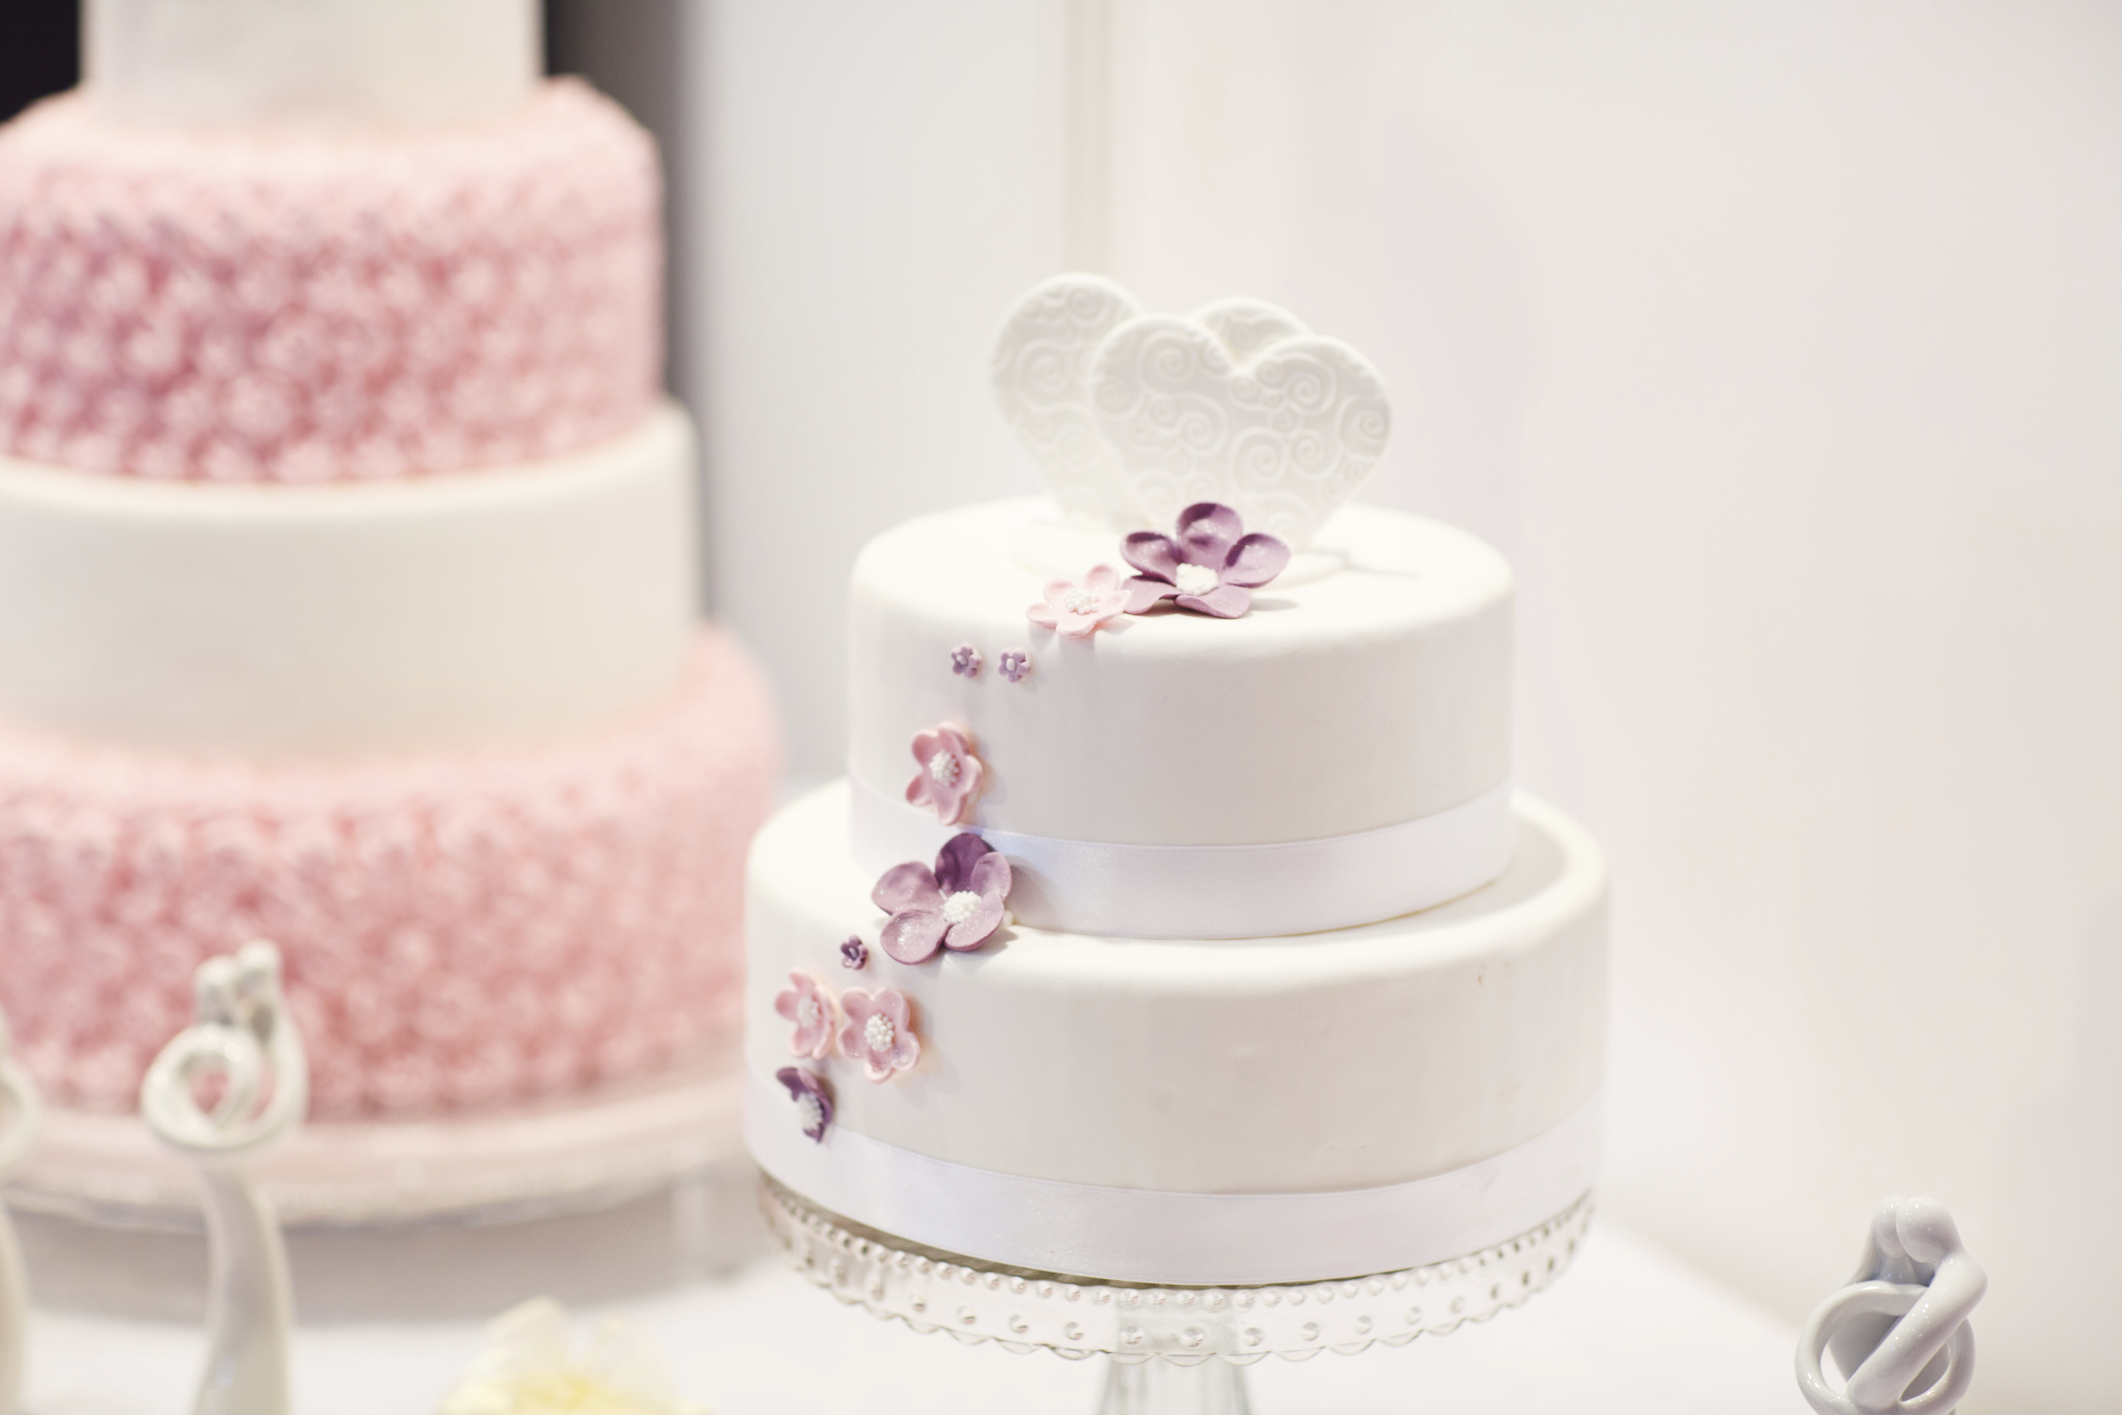 Budget wedding cakes ideas - Articles - Easy Weddings